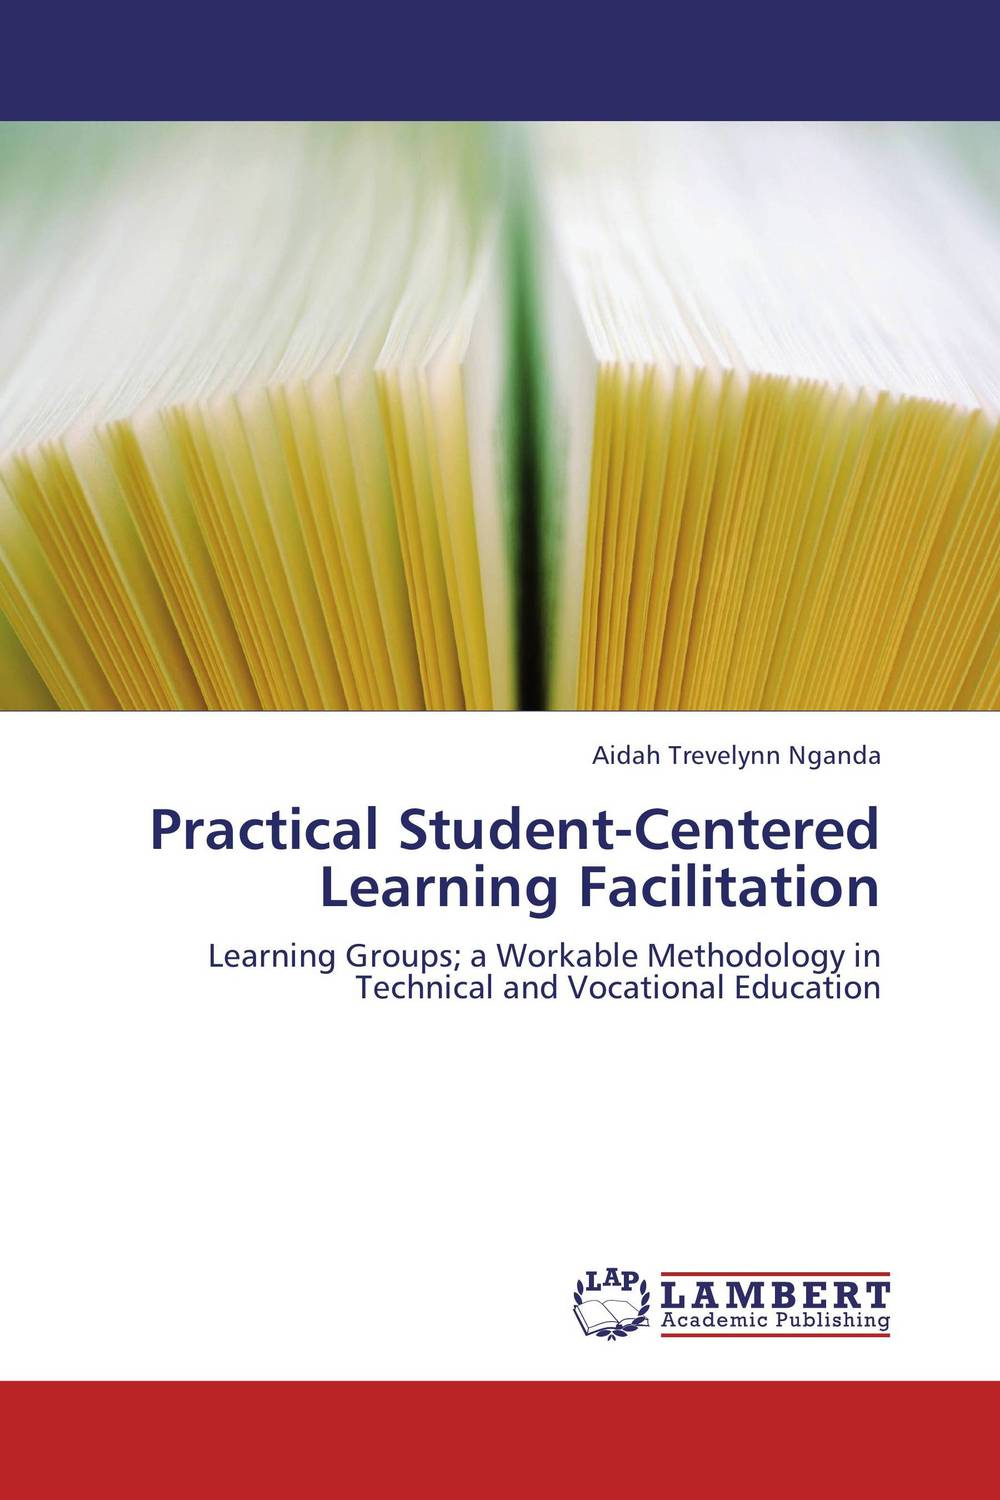 Practical Student-Centered Learning Facilitation practical student centered learning facilitation